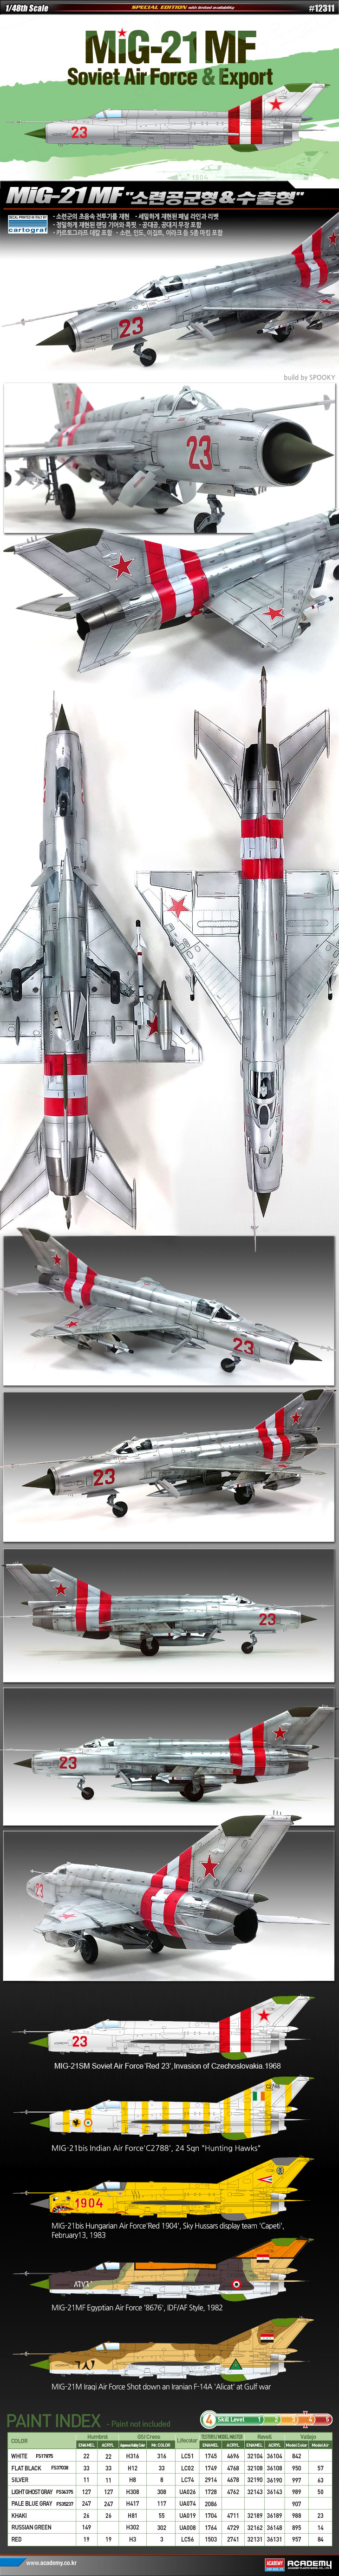 """Academy 1/48 Mikoyan MiG-21MF """"Soviet Air Forces & Export"""" # 12311"""